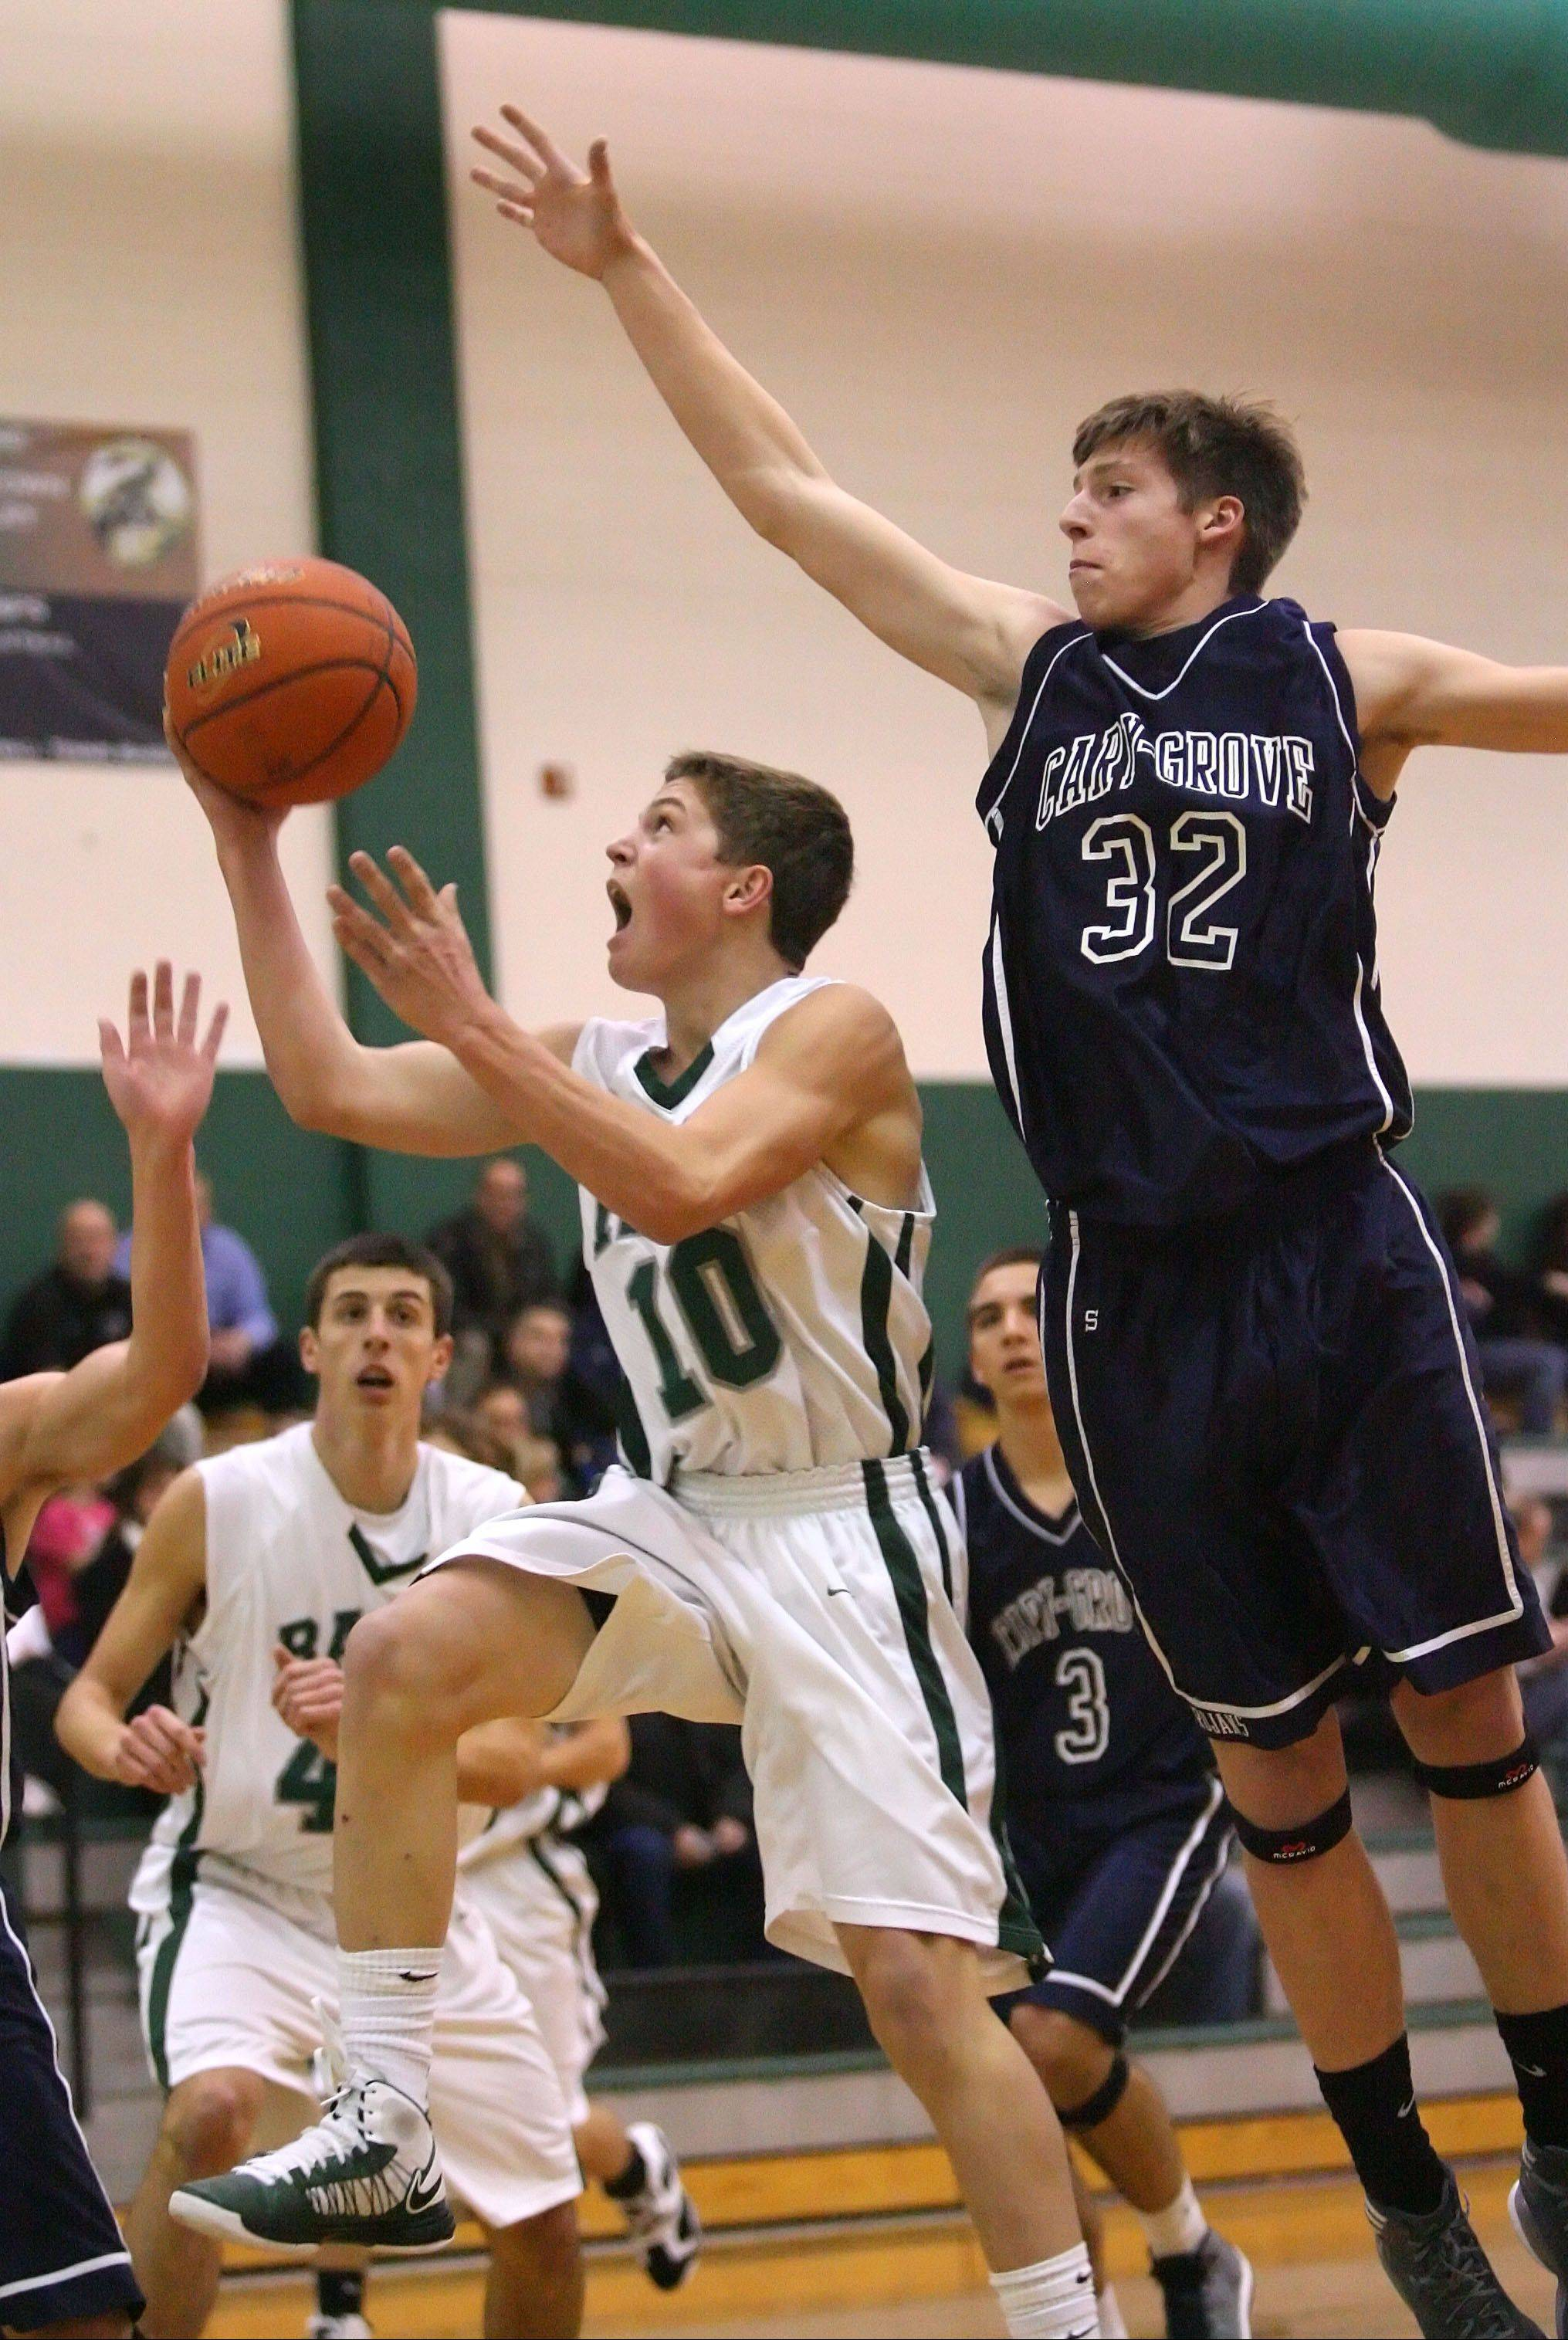 Grayslake Central�s Joey Mudd, left, drives on Cary-Grove�s Dean Lee on Tuesday night at Grayslake Central.